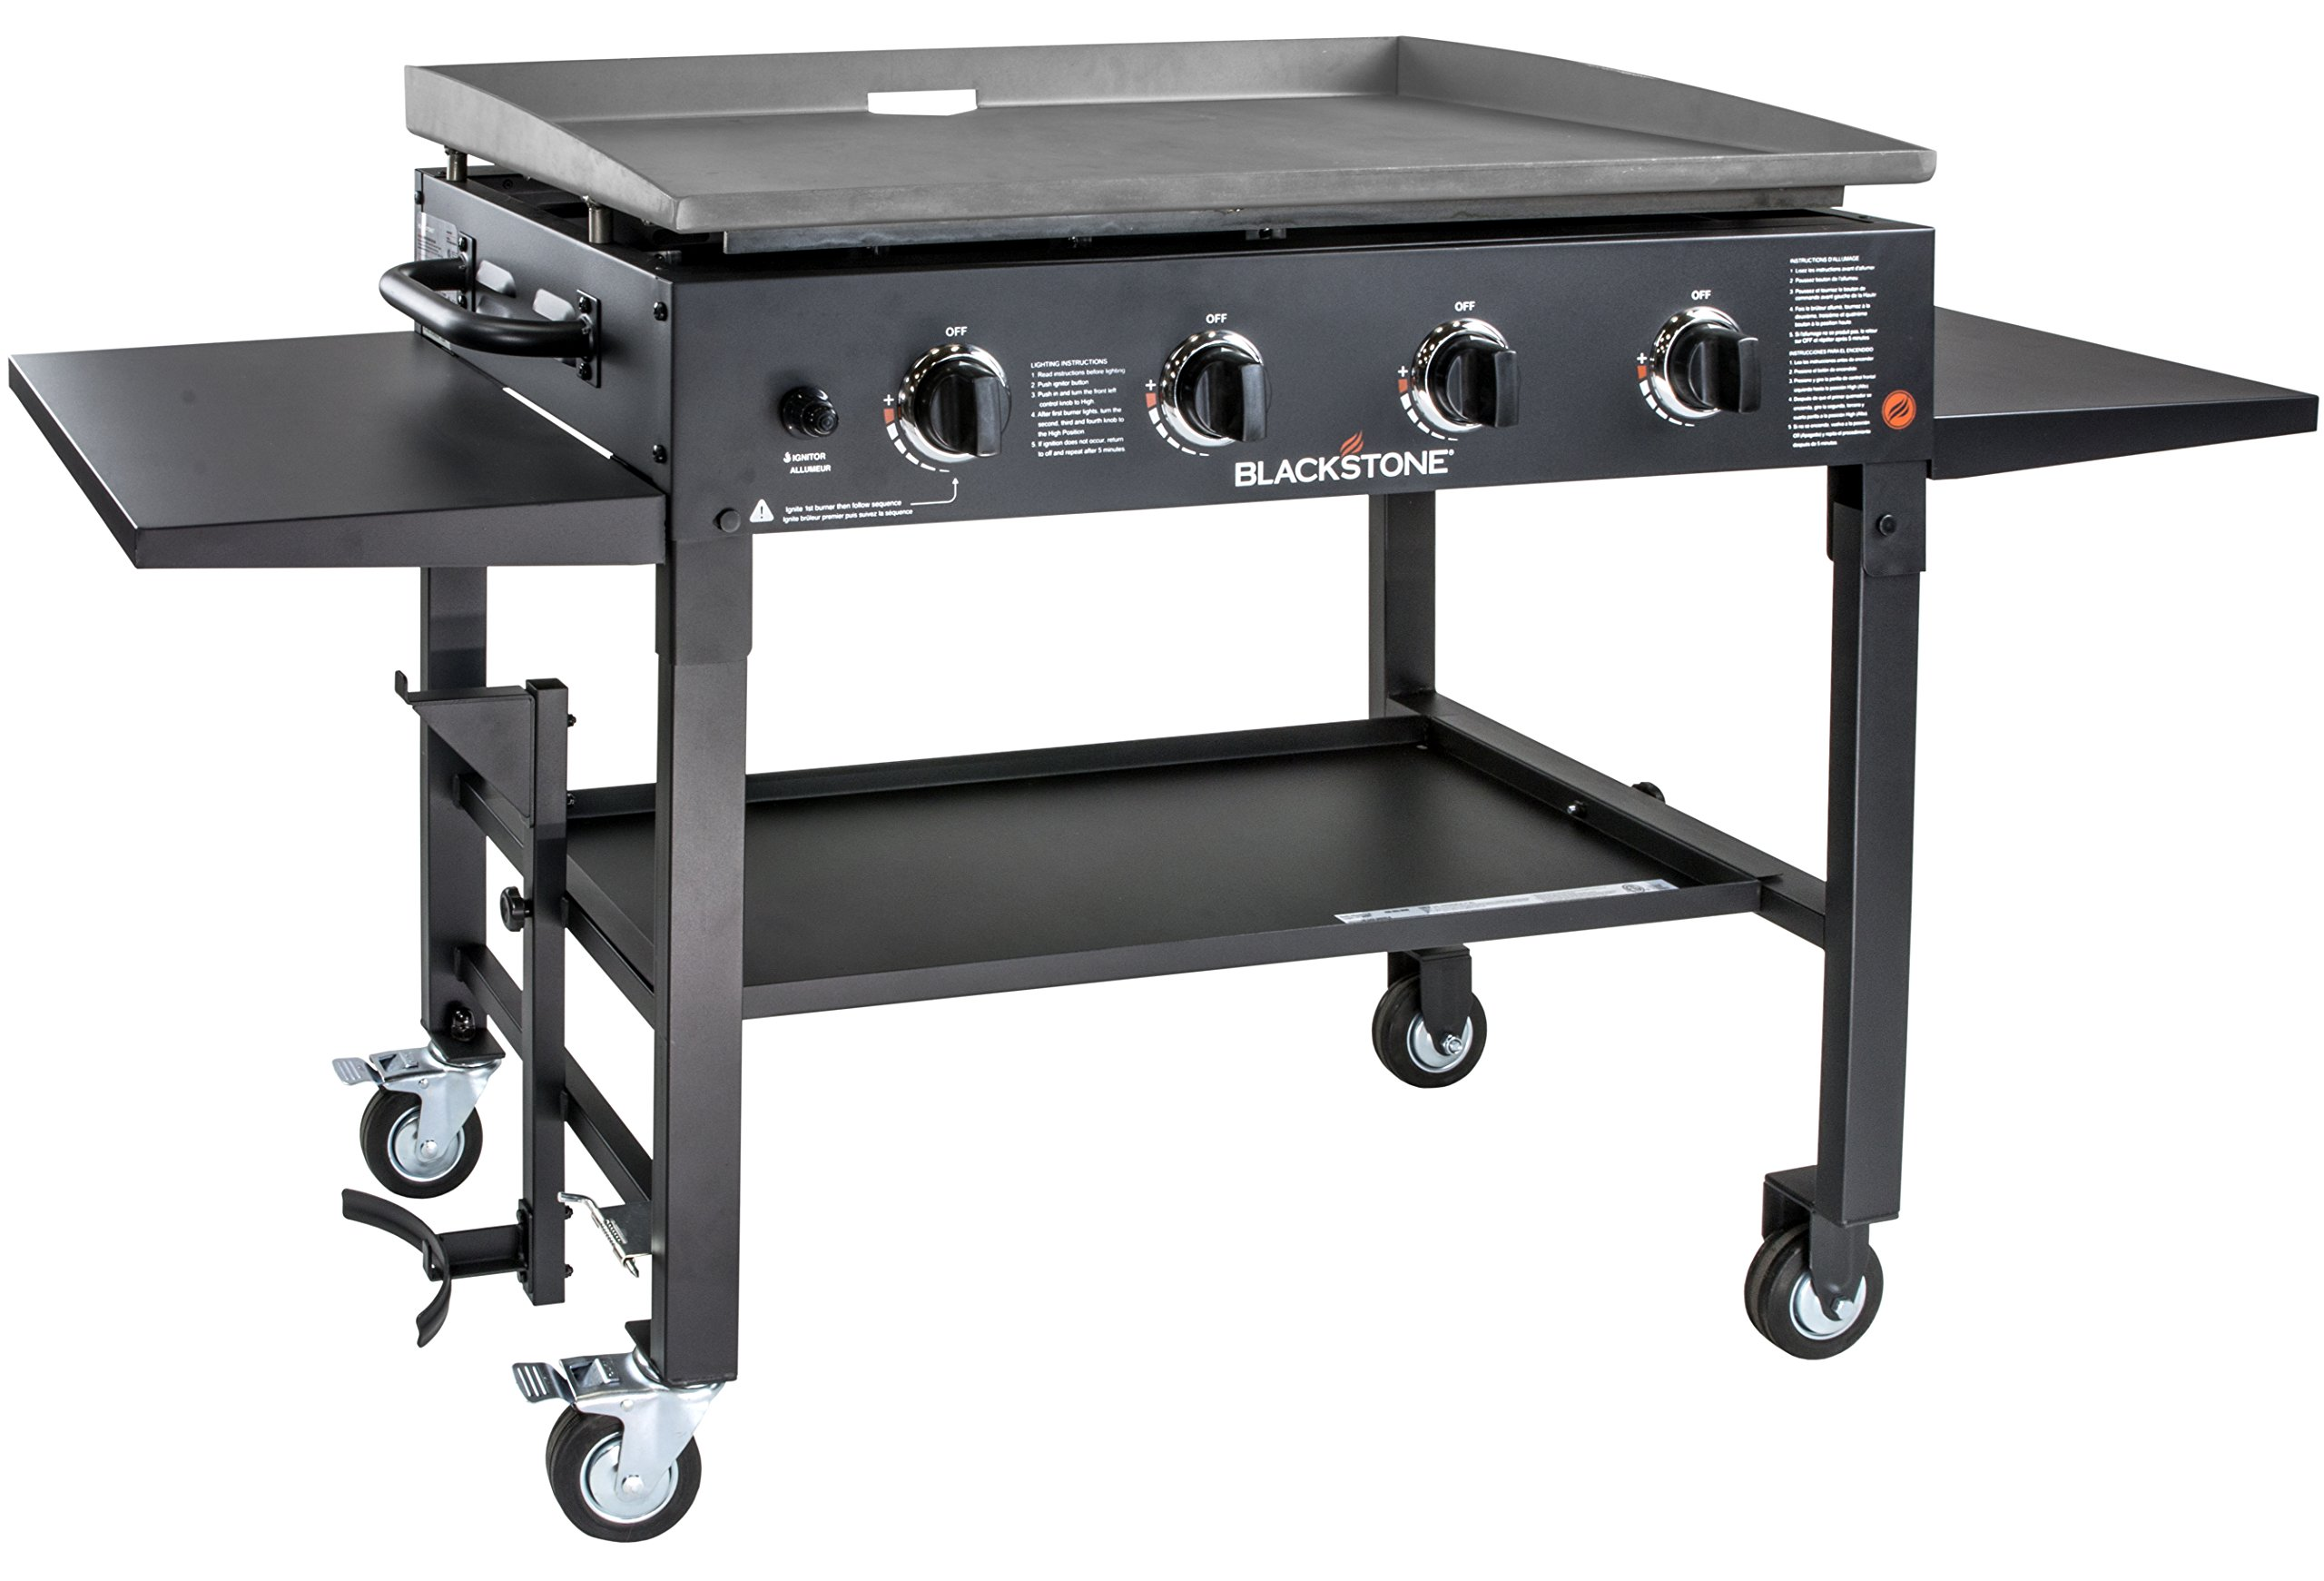 Blackstone 1554 Station-4-burner-Propane Fueled-Restaurant Grade-Professional 36 inch Outdoor Flat Top Gas Griddle Station-4-bur, 36'' - 4 Burner, Grill by Blackstone